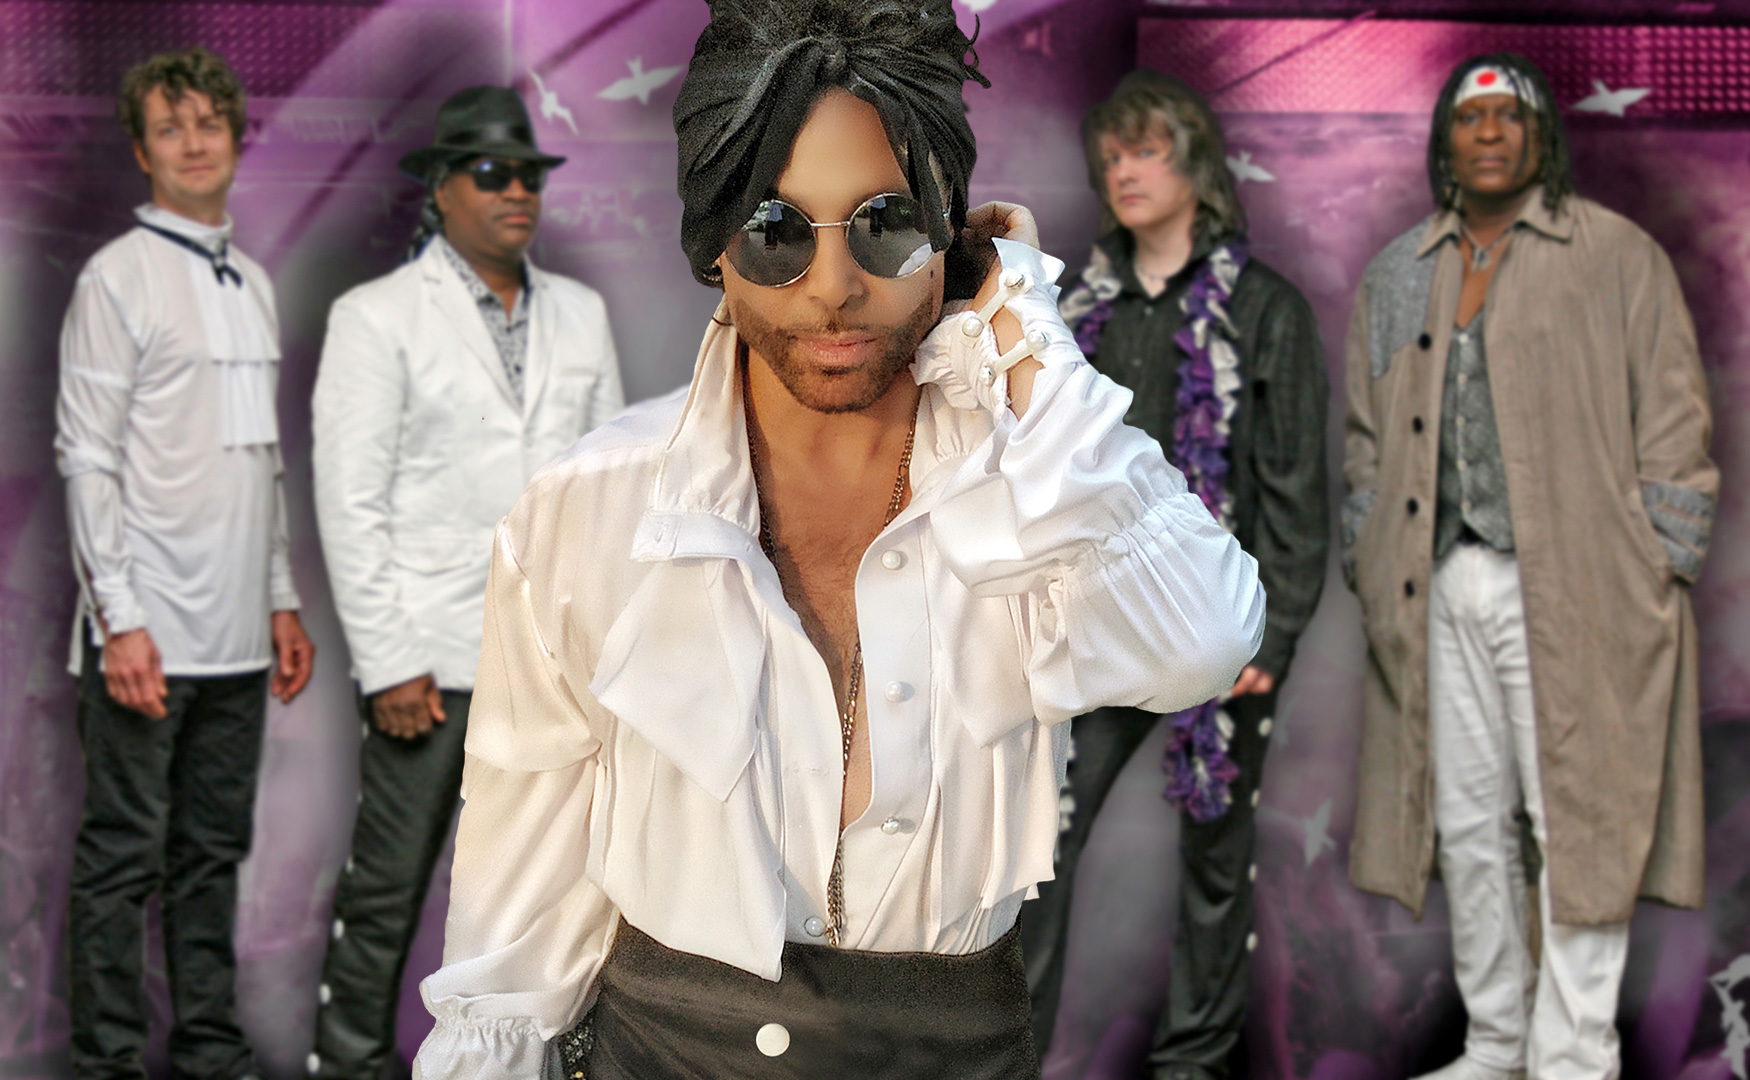 Marshall Charloff, center, is a singer and songwriter who also fronts the Prince tribute group, Purple Xperience.